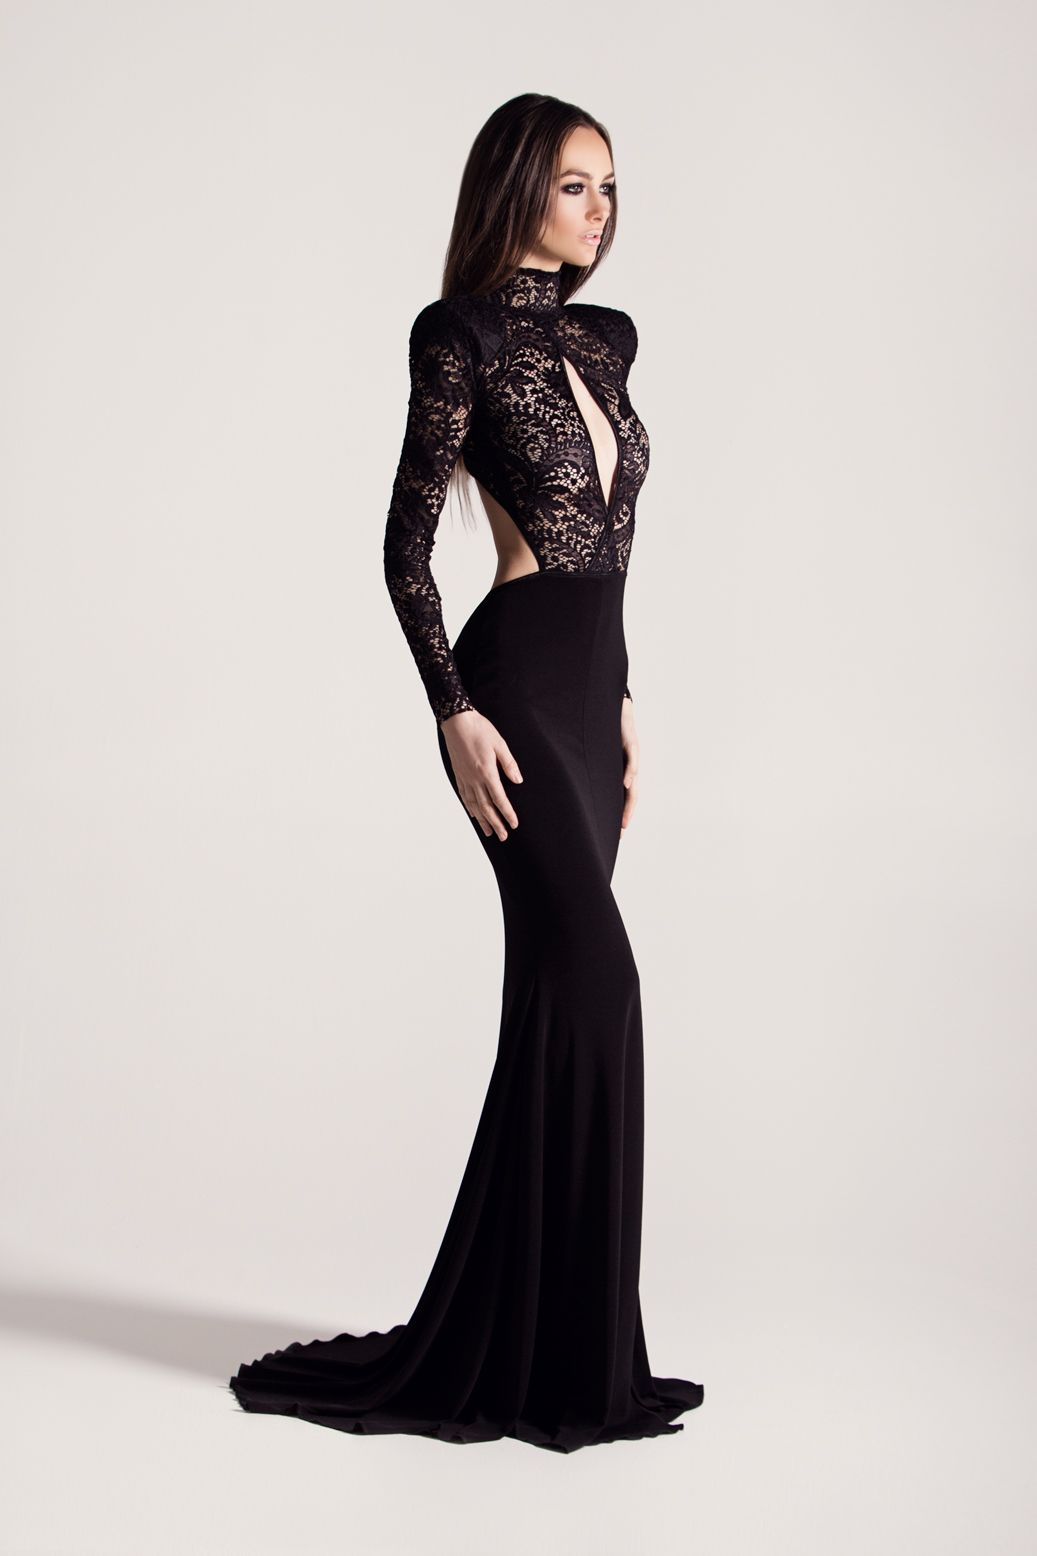 Michael Costello | Michael Costello | Pinterest | Michael costello ...